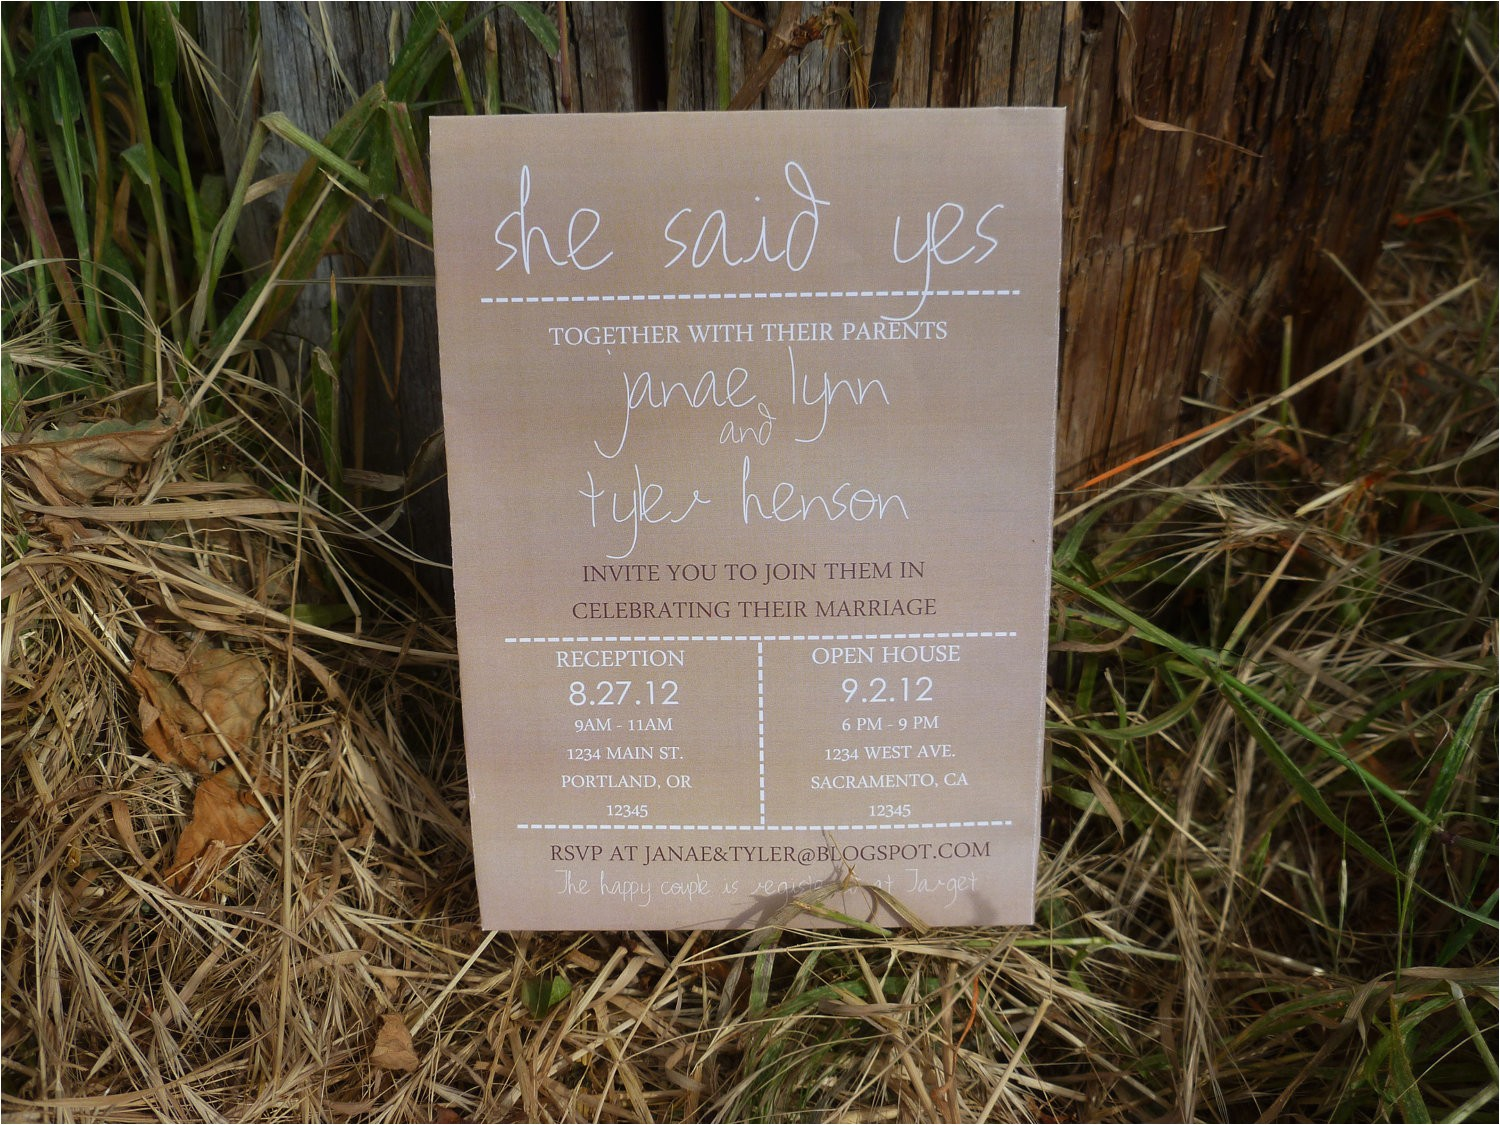 budget wedding ideas diy invitations etsy weddings country style kraft paper